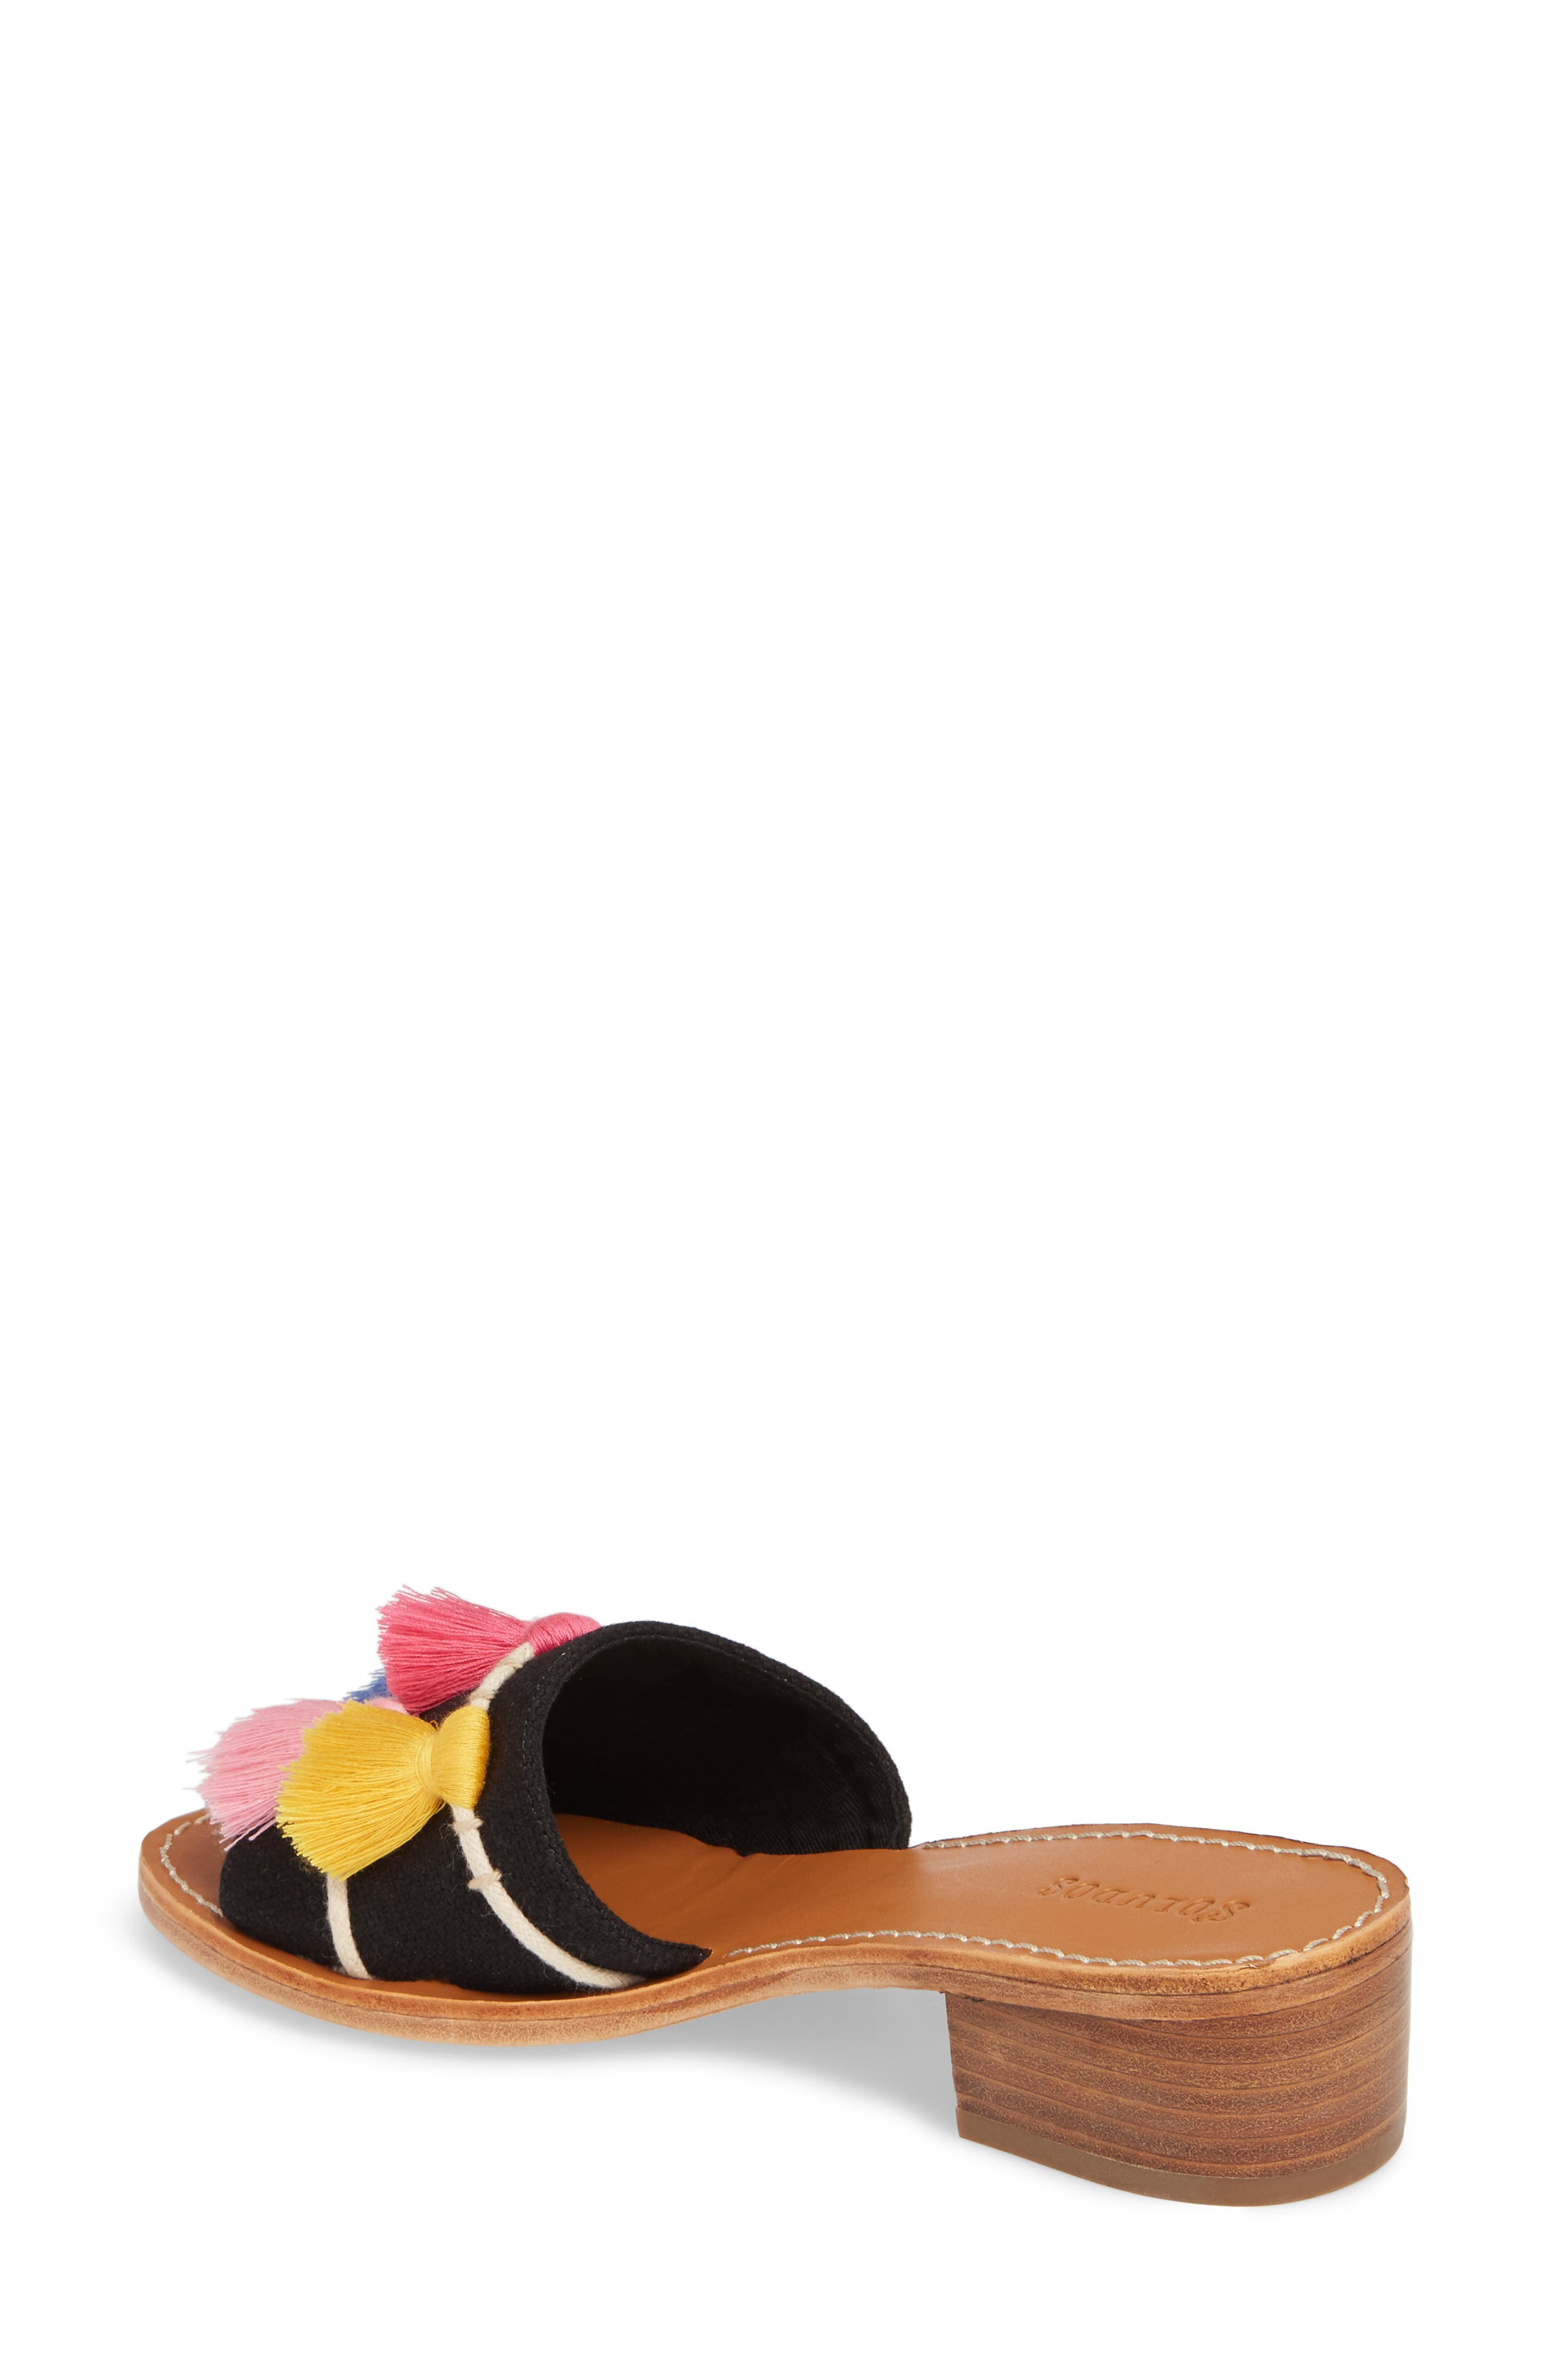 Alternate Image 2  - Soludos Tassel City Sandal (Women)